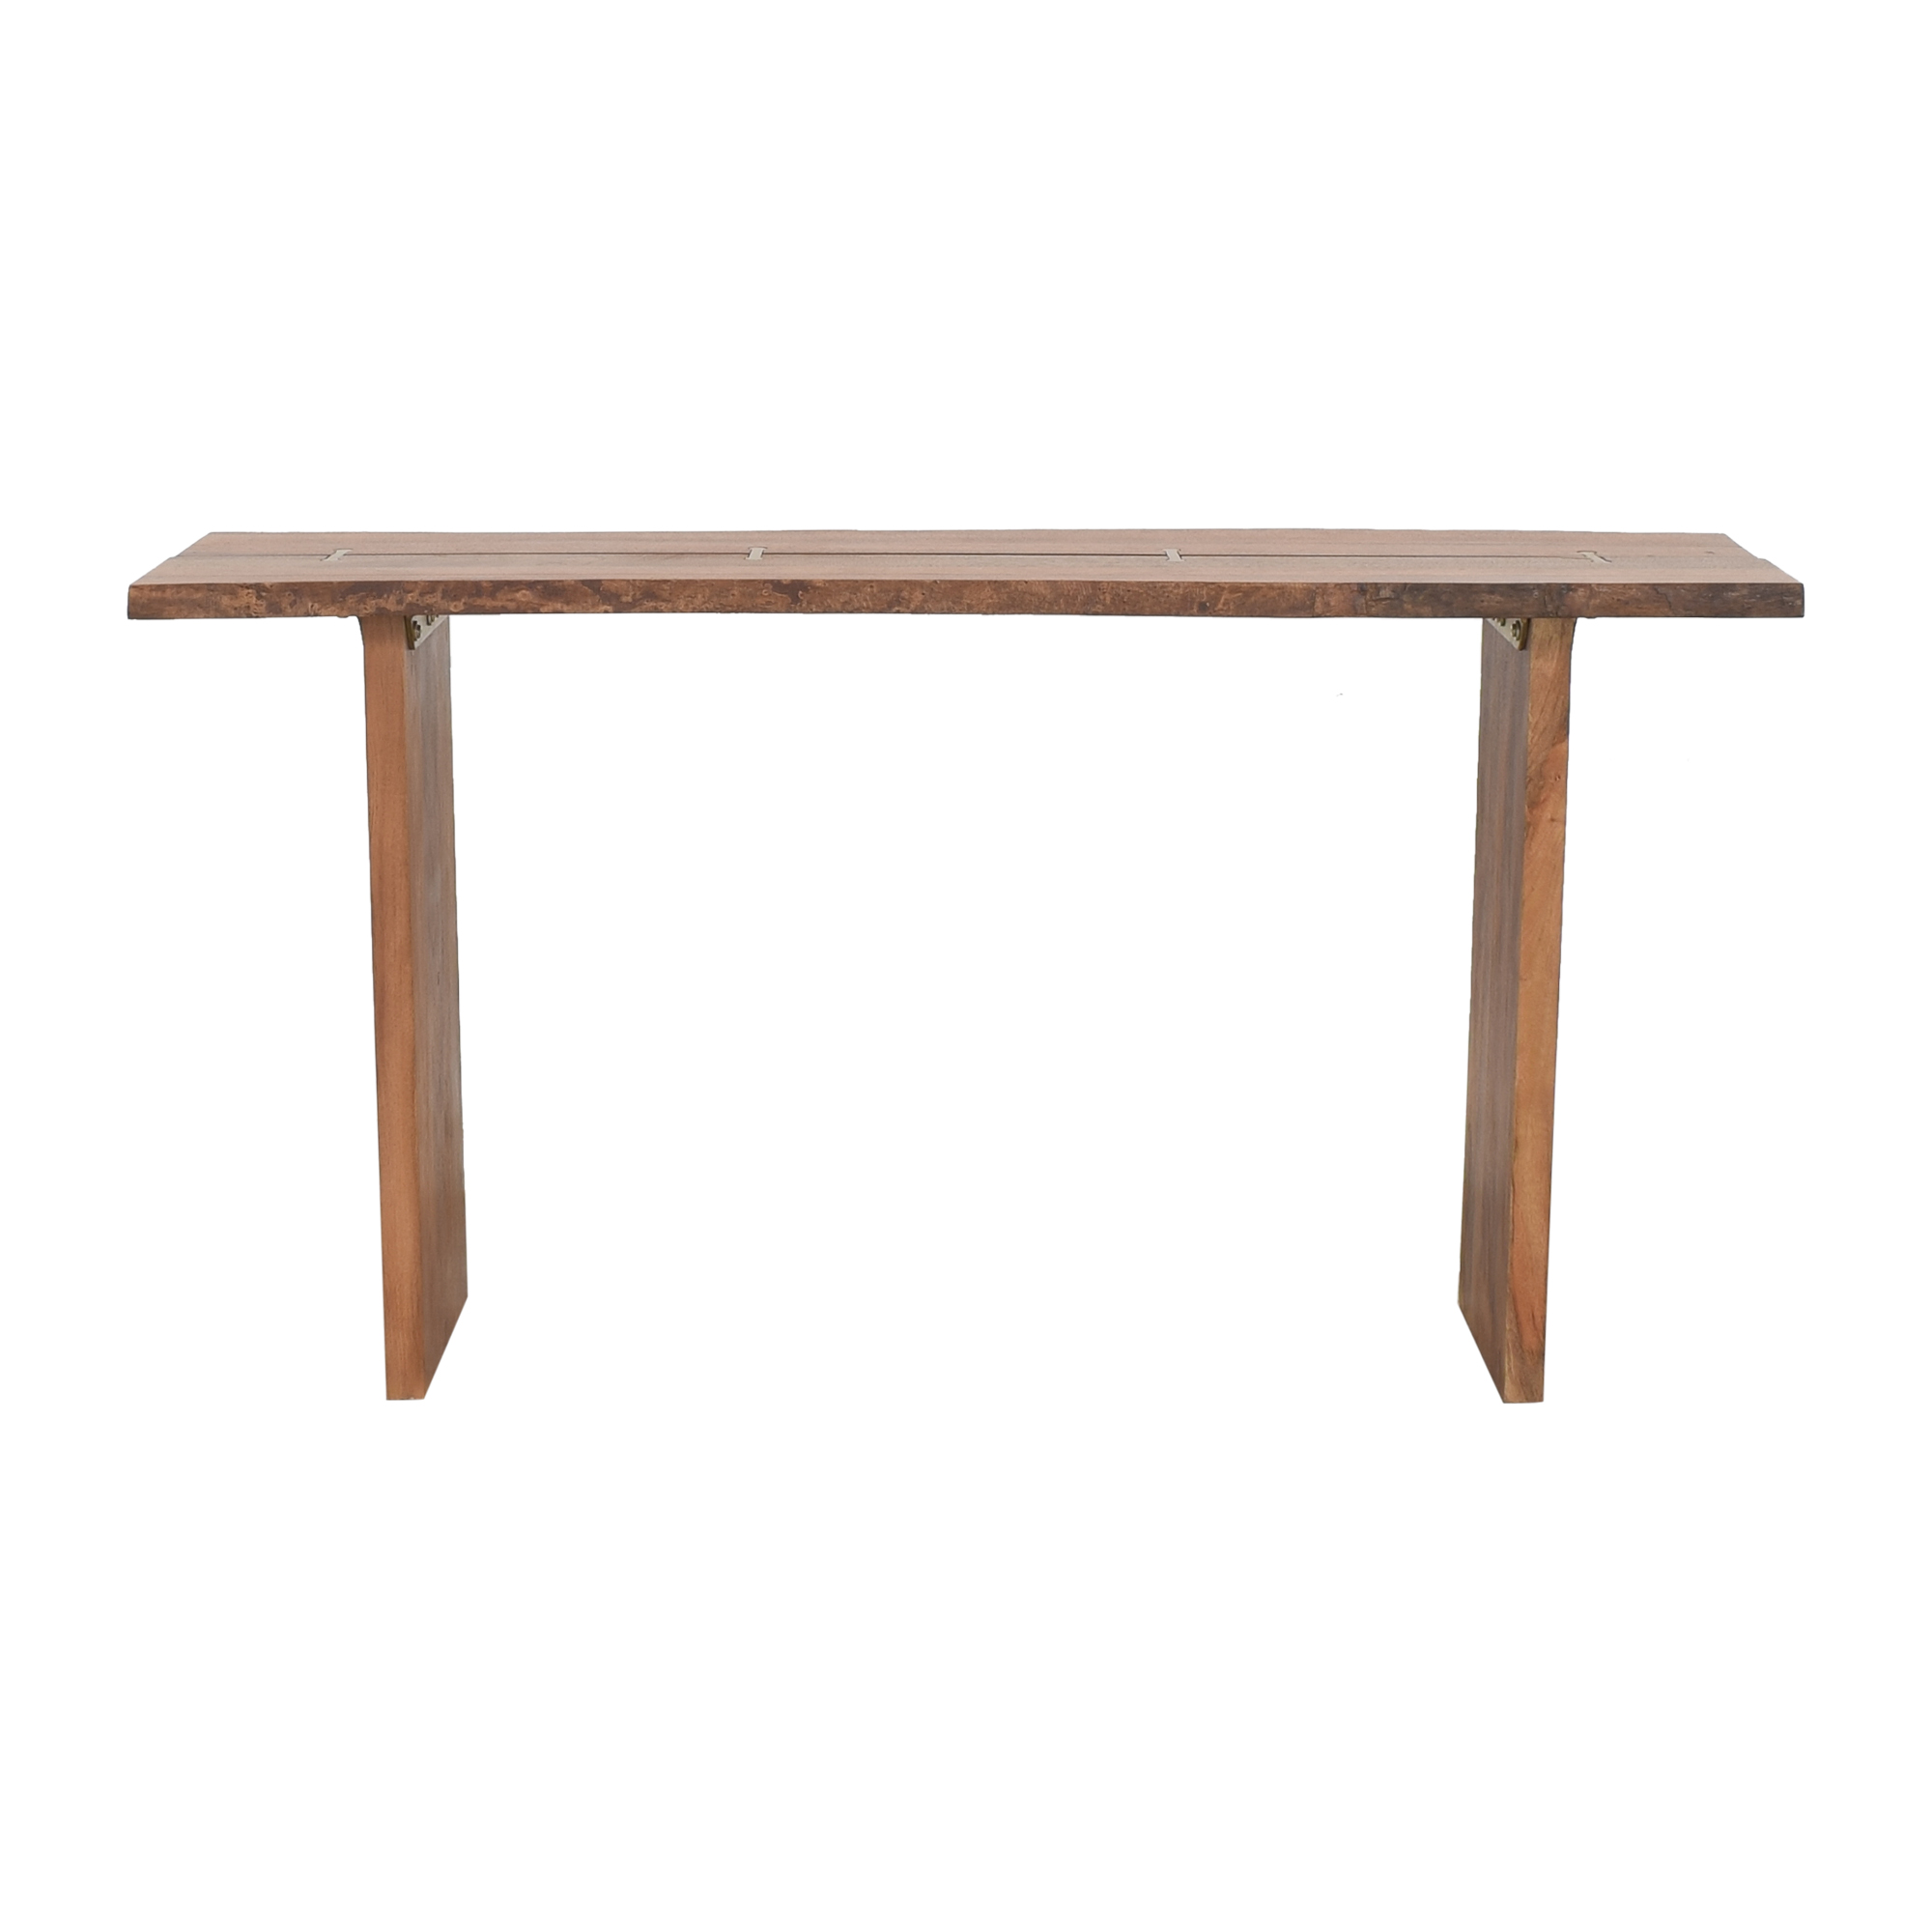 World Market World Market Live Edge Sansur Console Table on sale